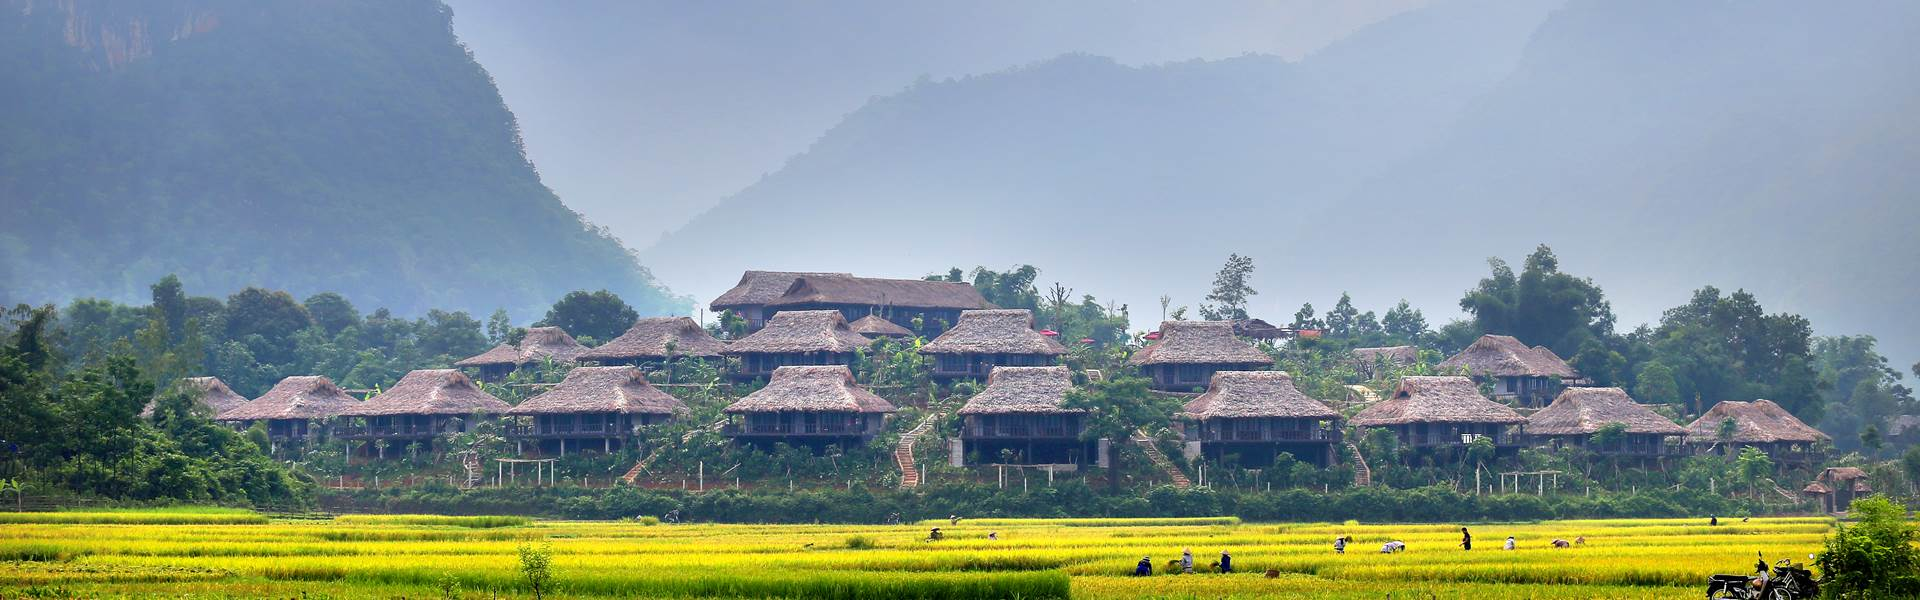 Mai Chau Ecolodge - Mai Chau Accommodation - Asiatica Travel